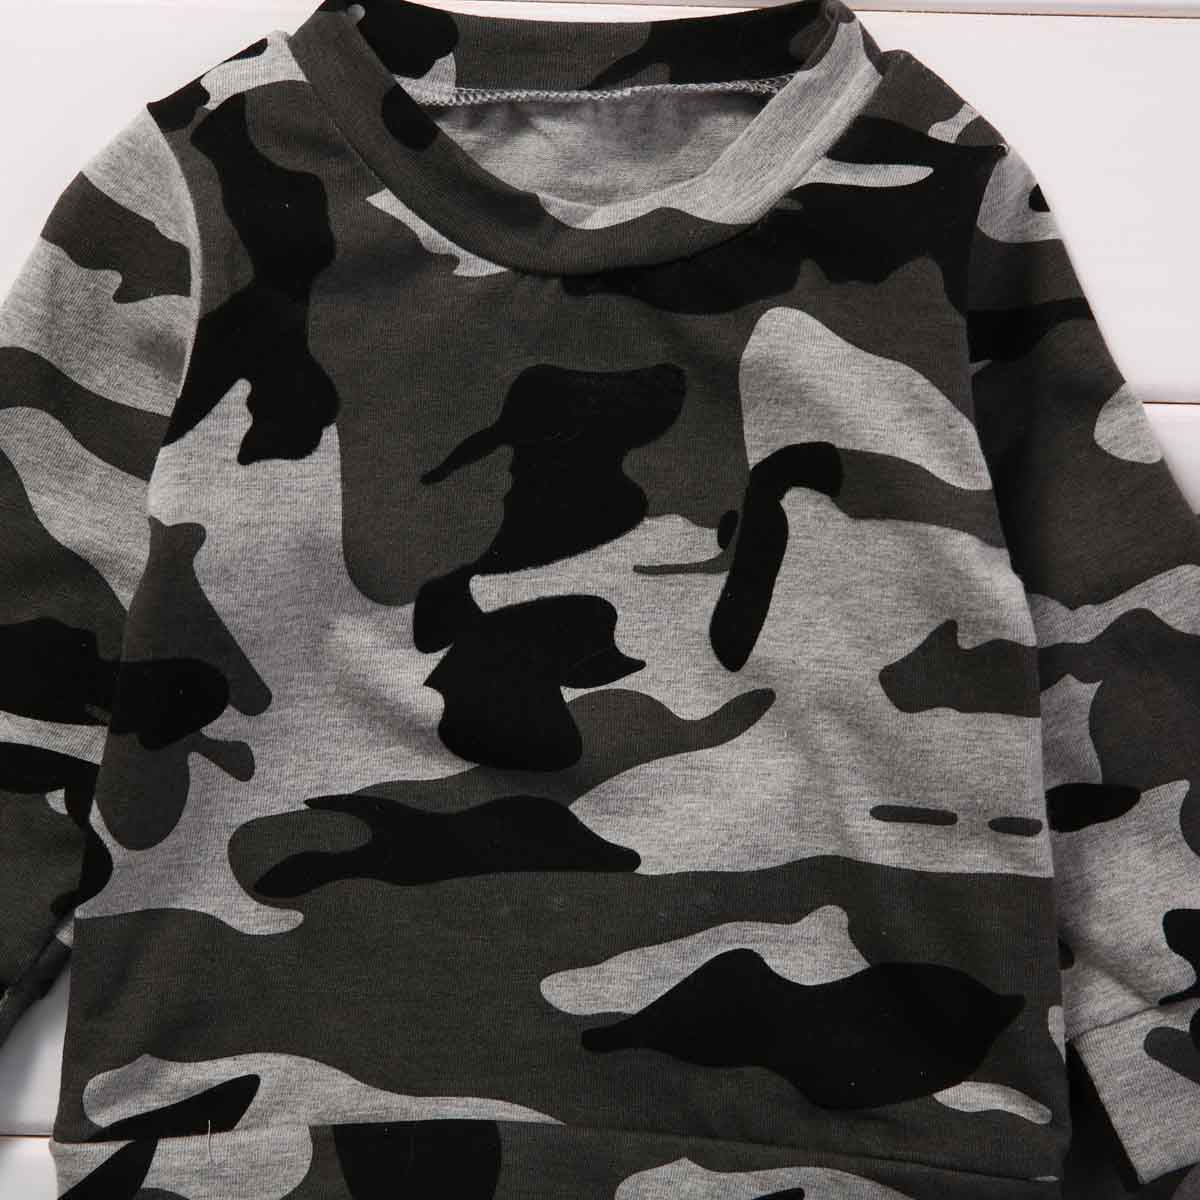 2pcs-new-baby-clothing-set-Toddler-Infant-Camouflage-Baby-Boy-Girl-Clothes-T-shirt-TopsPants-Outfits-Set-3